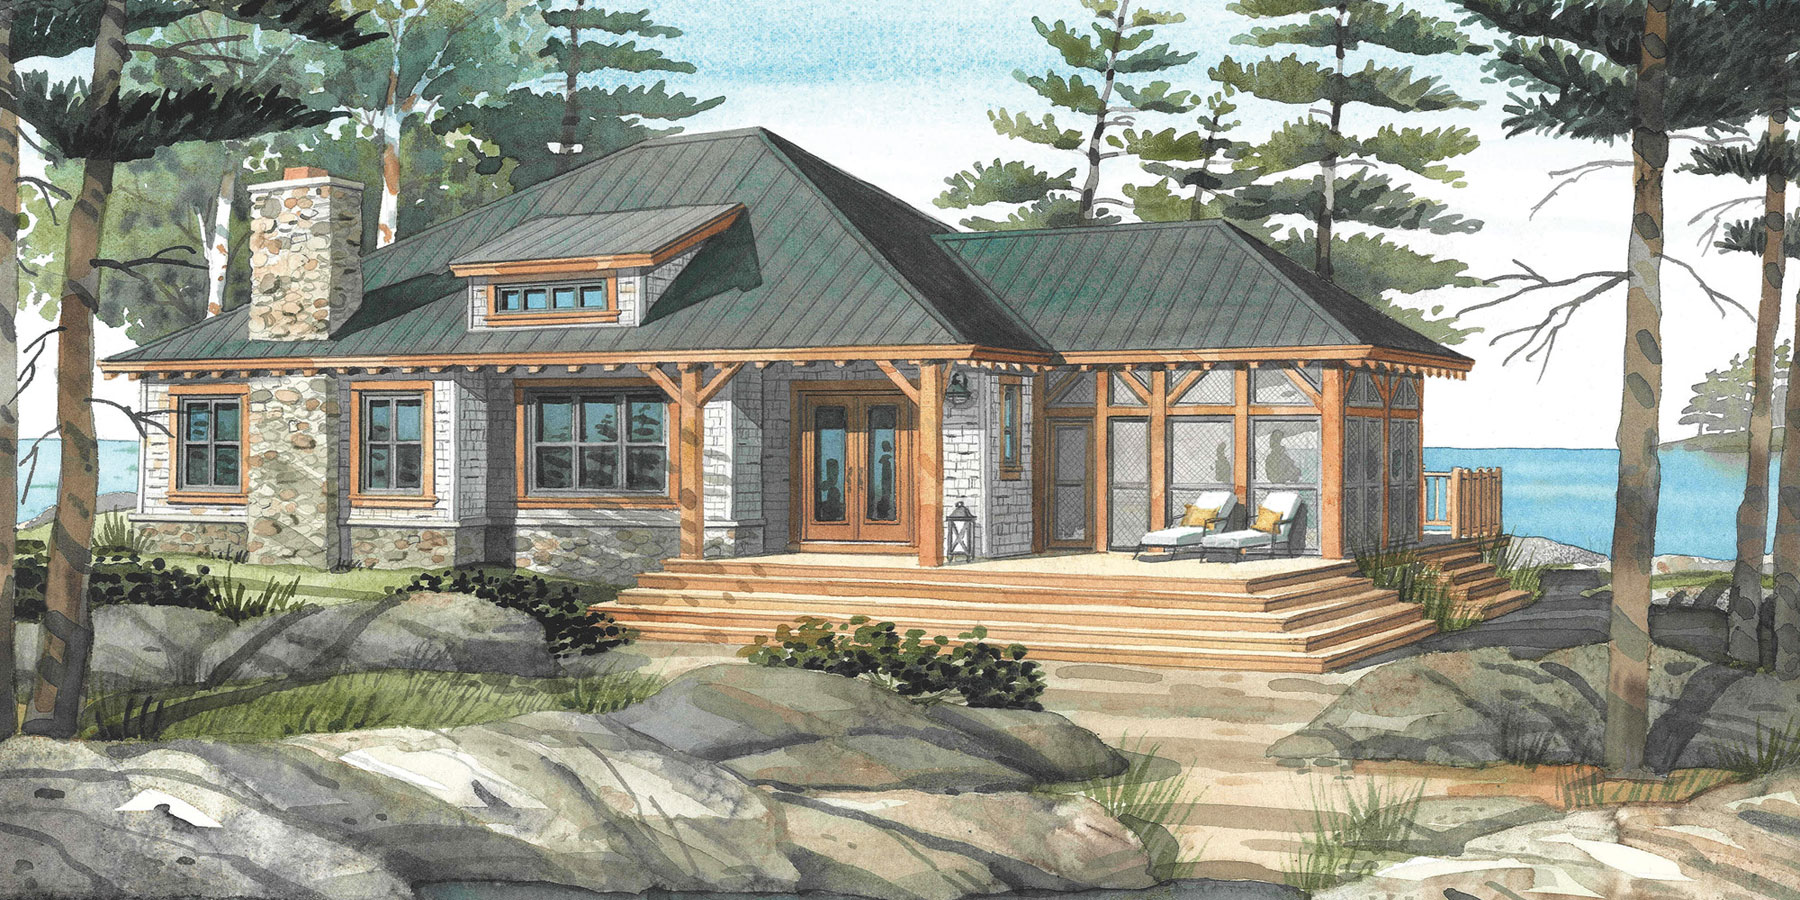 Cottage Plans amp; Custom Home Designs  Normerica Authentic Timber Frame